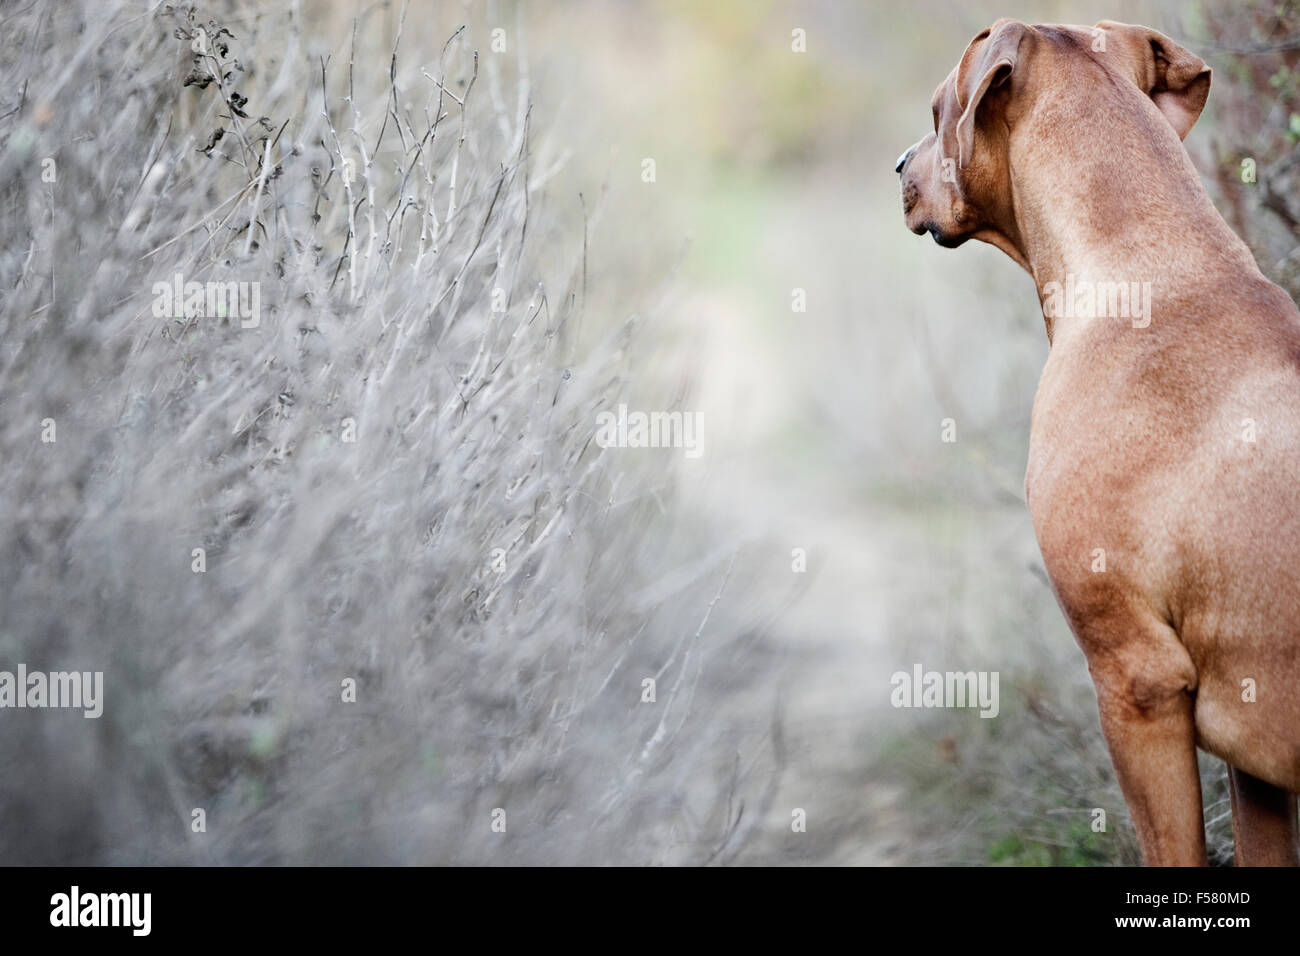 Looking over shoulder of Rhodesian Ridgeback dog in nature looking down narrow dirt trail lined with barren shrubs - Stock Image